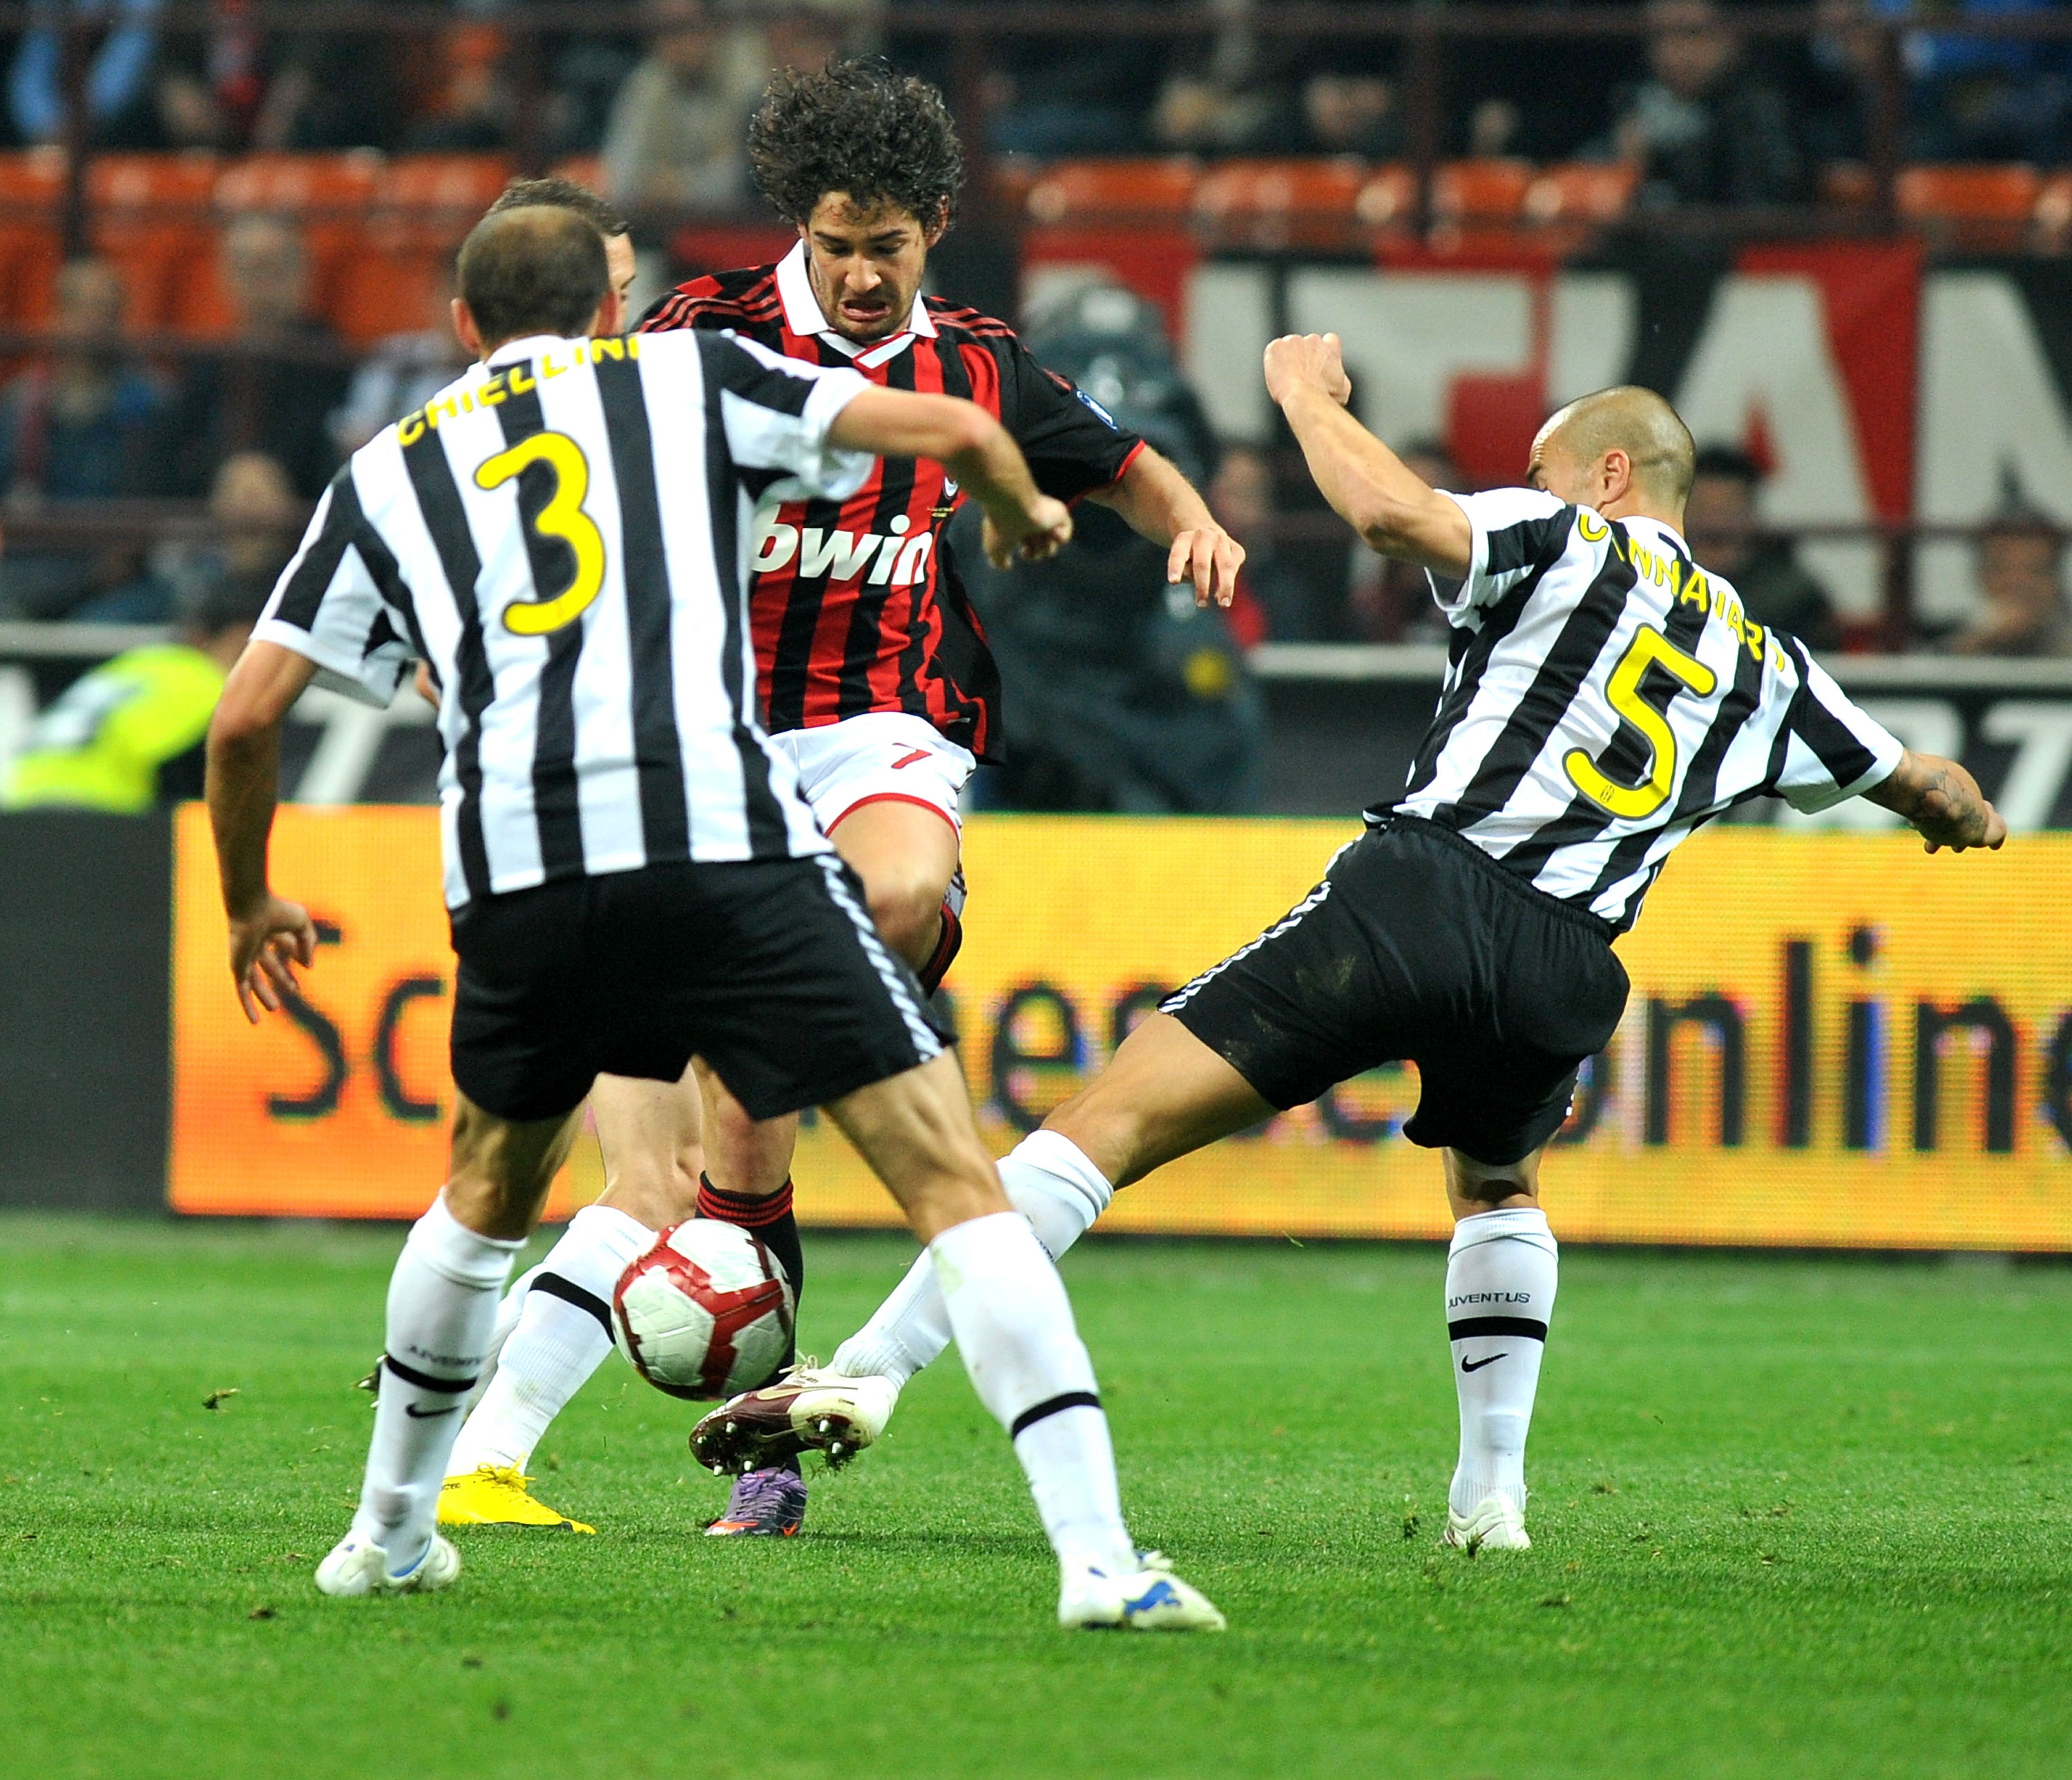 MILAN, ITALY - MAY 15: Alexandre Pato of AC Milan battles for the ball against Giorgio Chiellini and Fabio Cannavaro of Juventus FC during the Serie A match between AC Milan and Juventus FC at Stadio Giuseppe Meazza on May 15, 2010 in Milan, Italy.  (Phot